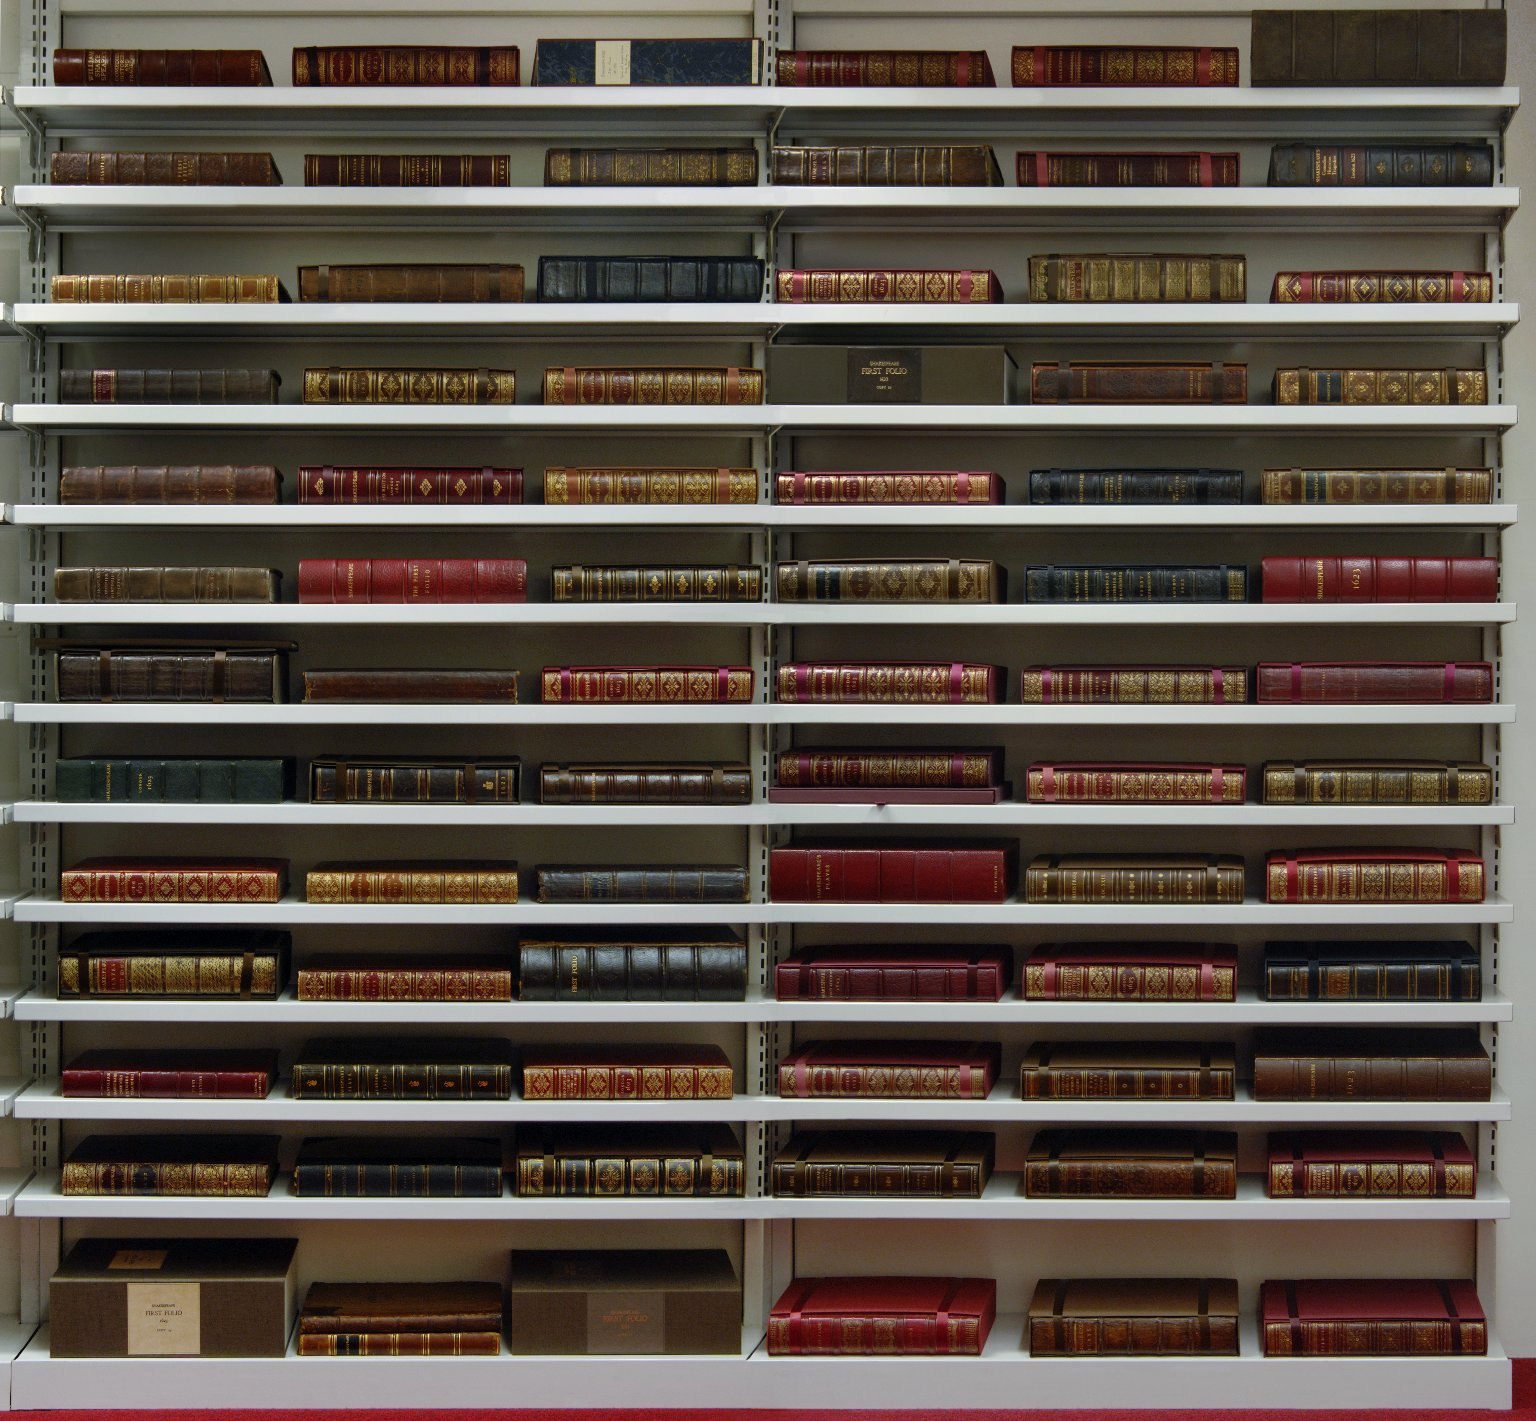 Folger collection of 82 First Folios in the STC vault